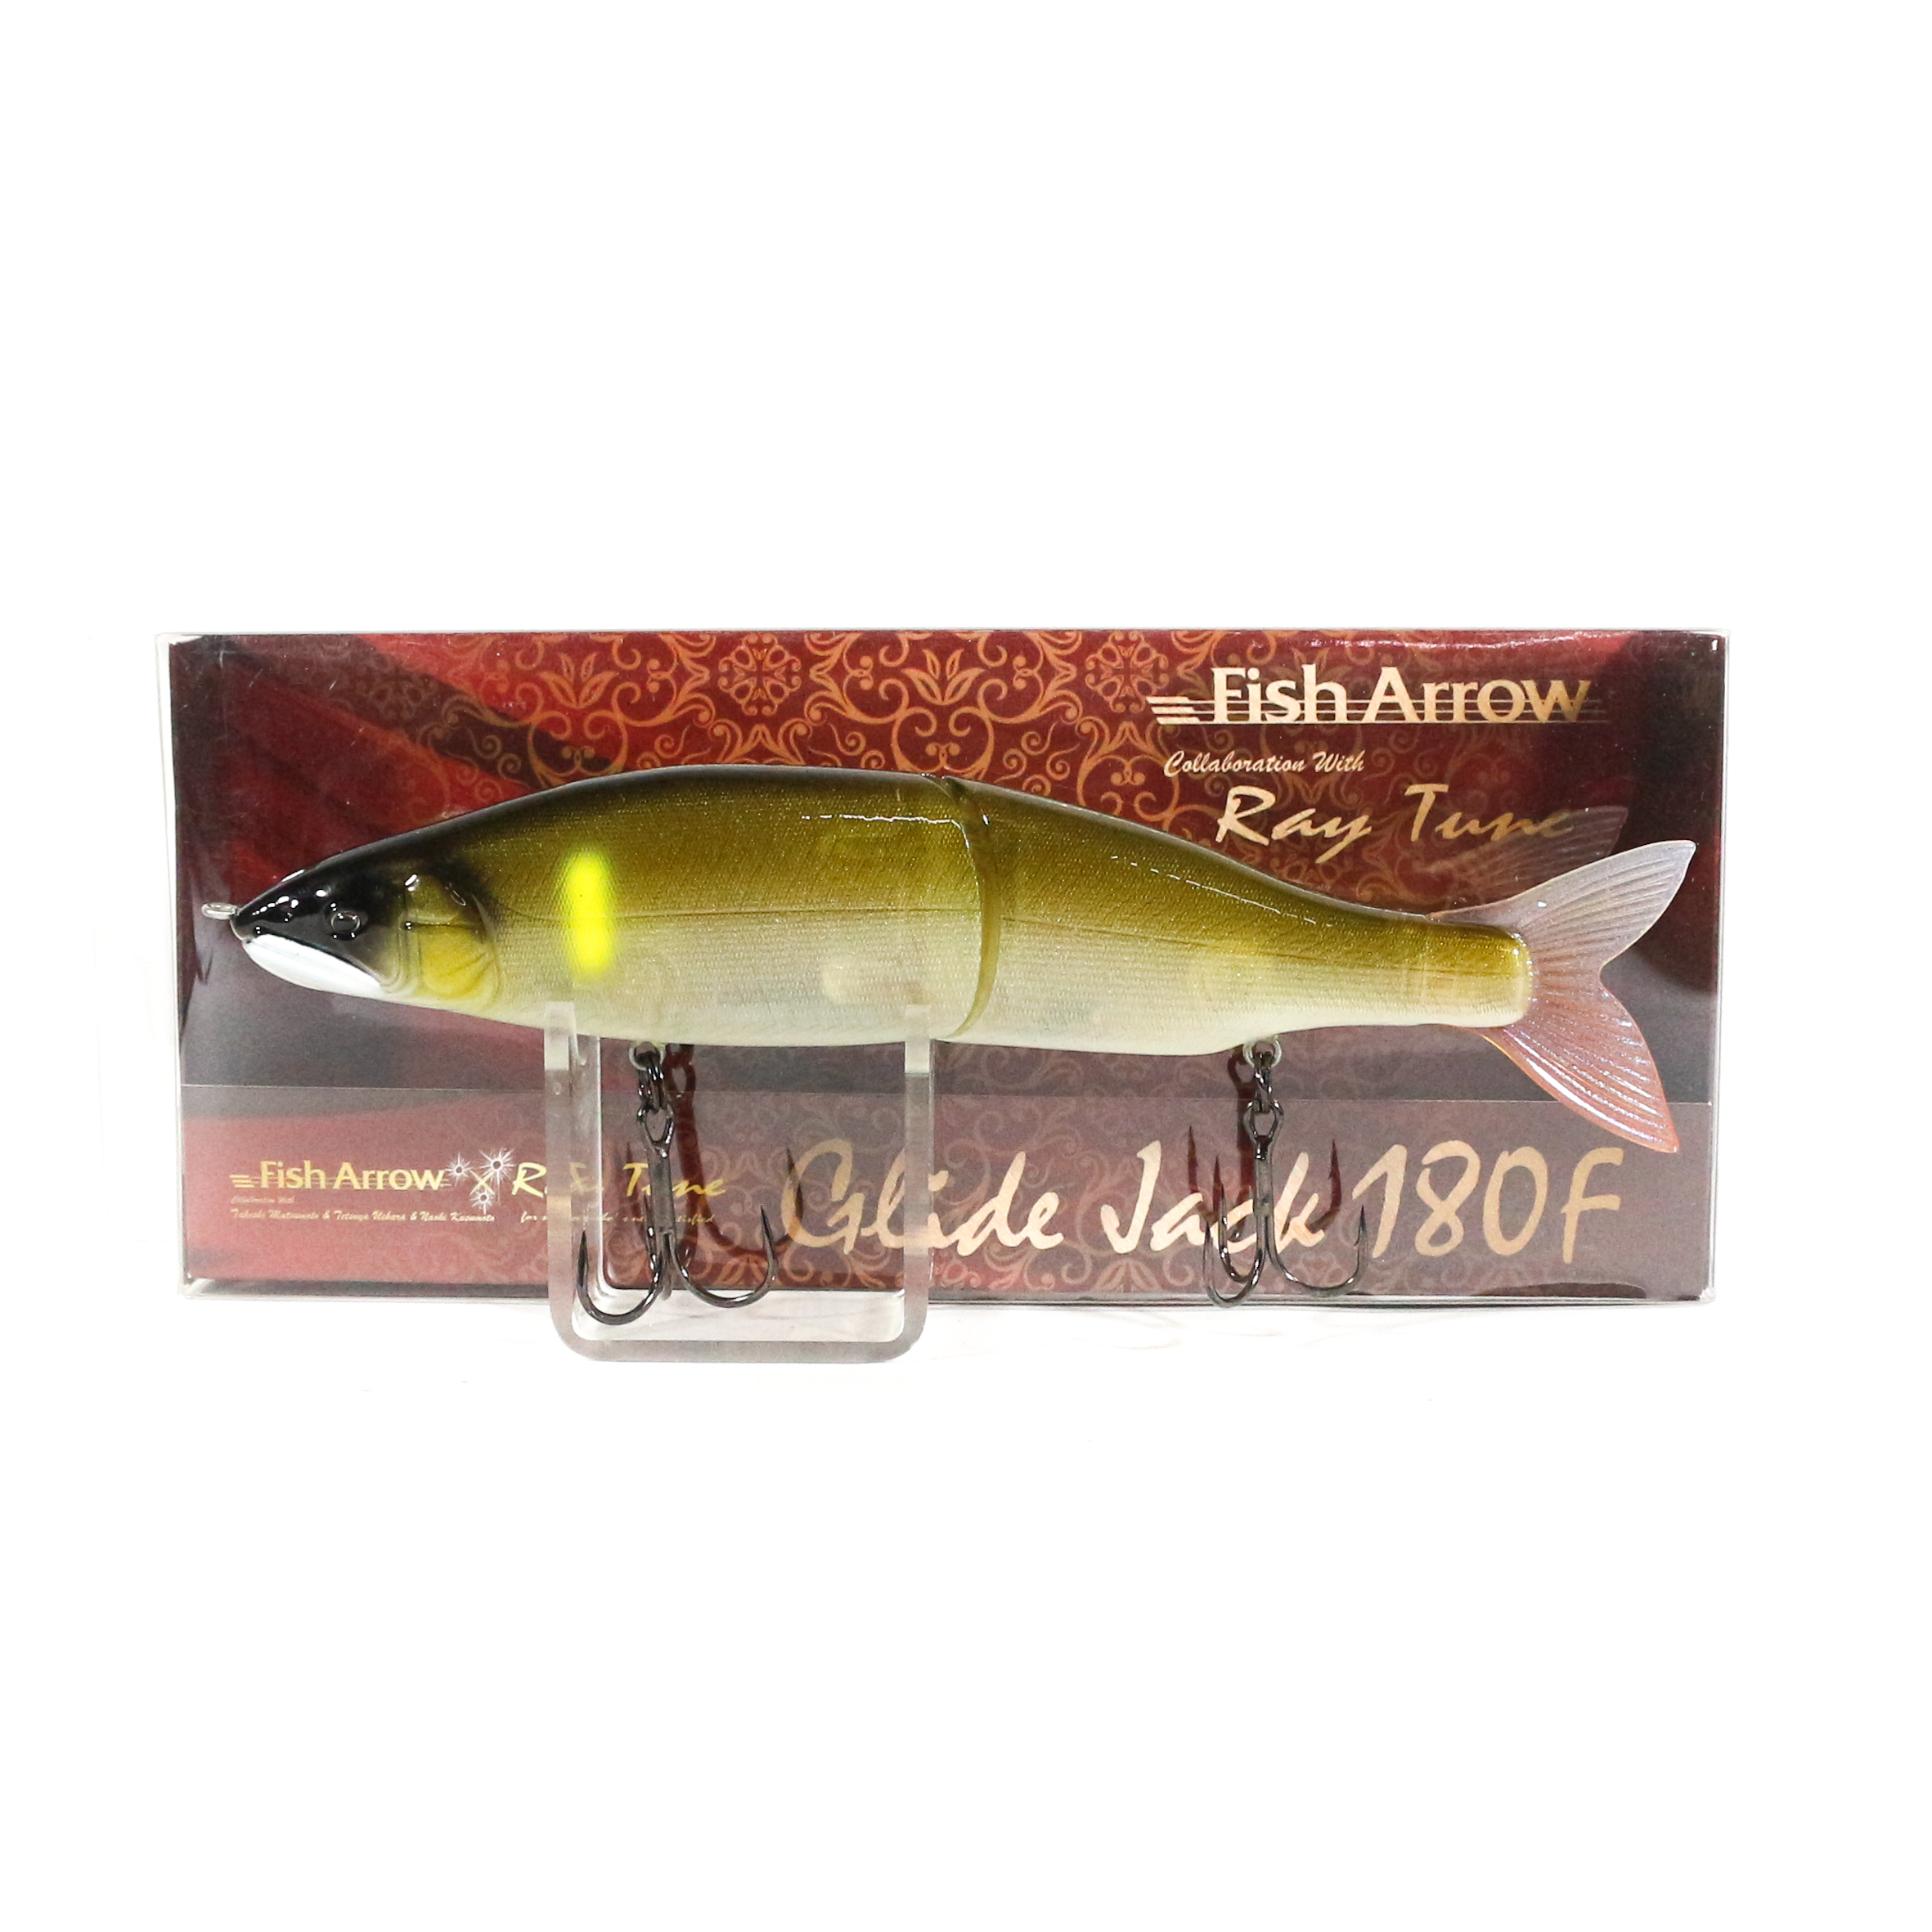 Fish Arrow Glide Jack 180F 57 grams Floating Lure #02 (2305)